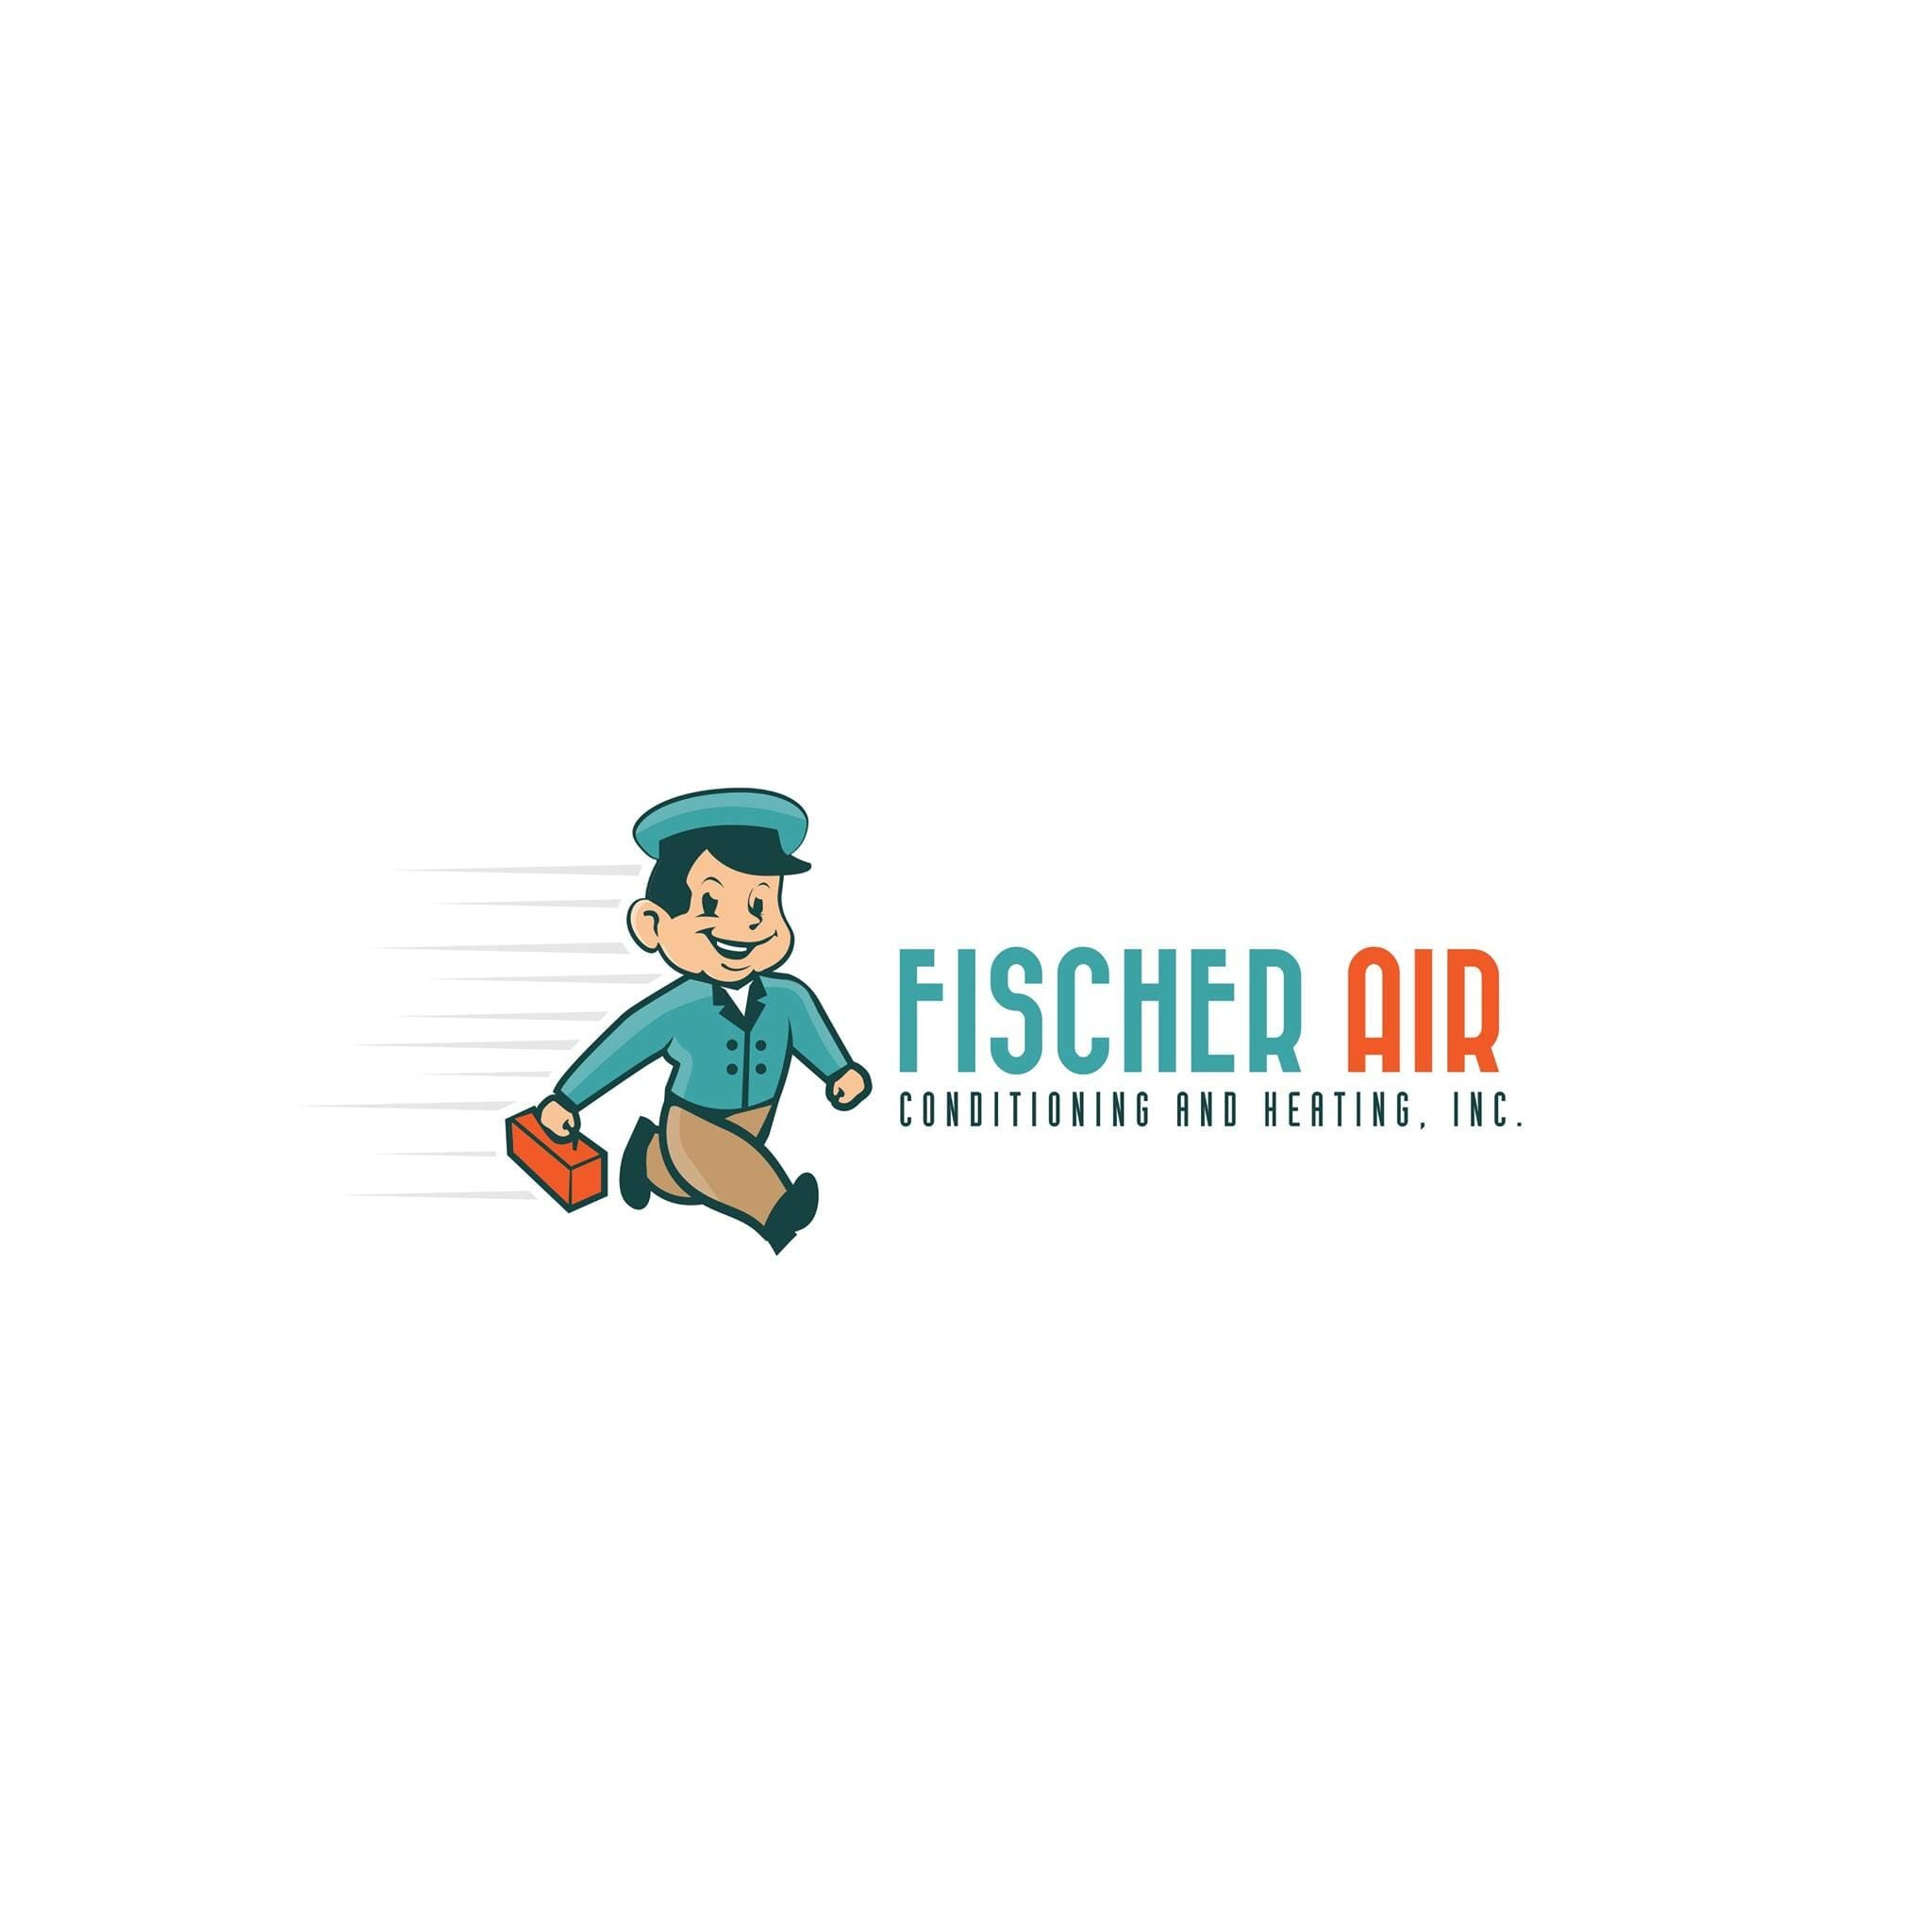 Fischer Air Conditioning & Heating Inc image 0